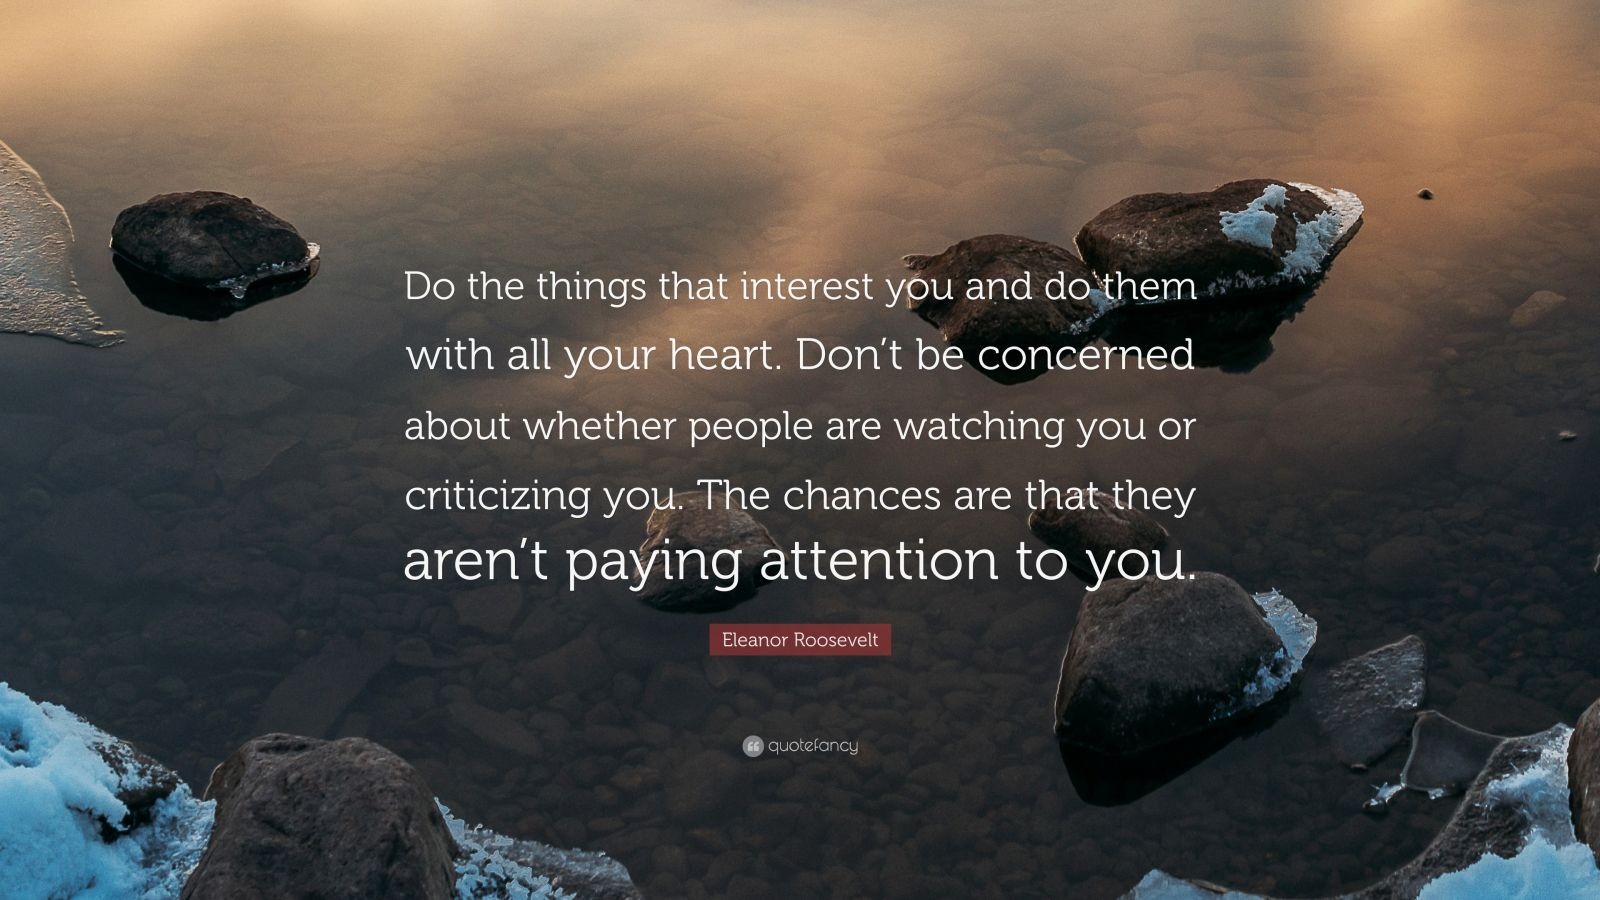 """Eleanor Roosevelt Quote: """"Do the things that interest you and do them with all your heart. Don't be concerned about whether people are watching you or criticizing you. The chances are that they aren't paying attention to you."""""""